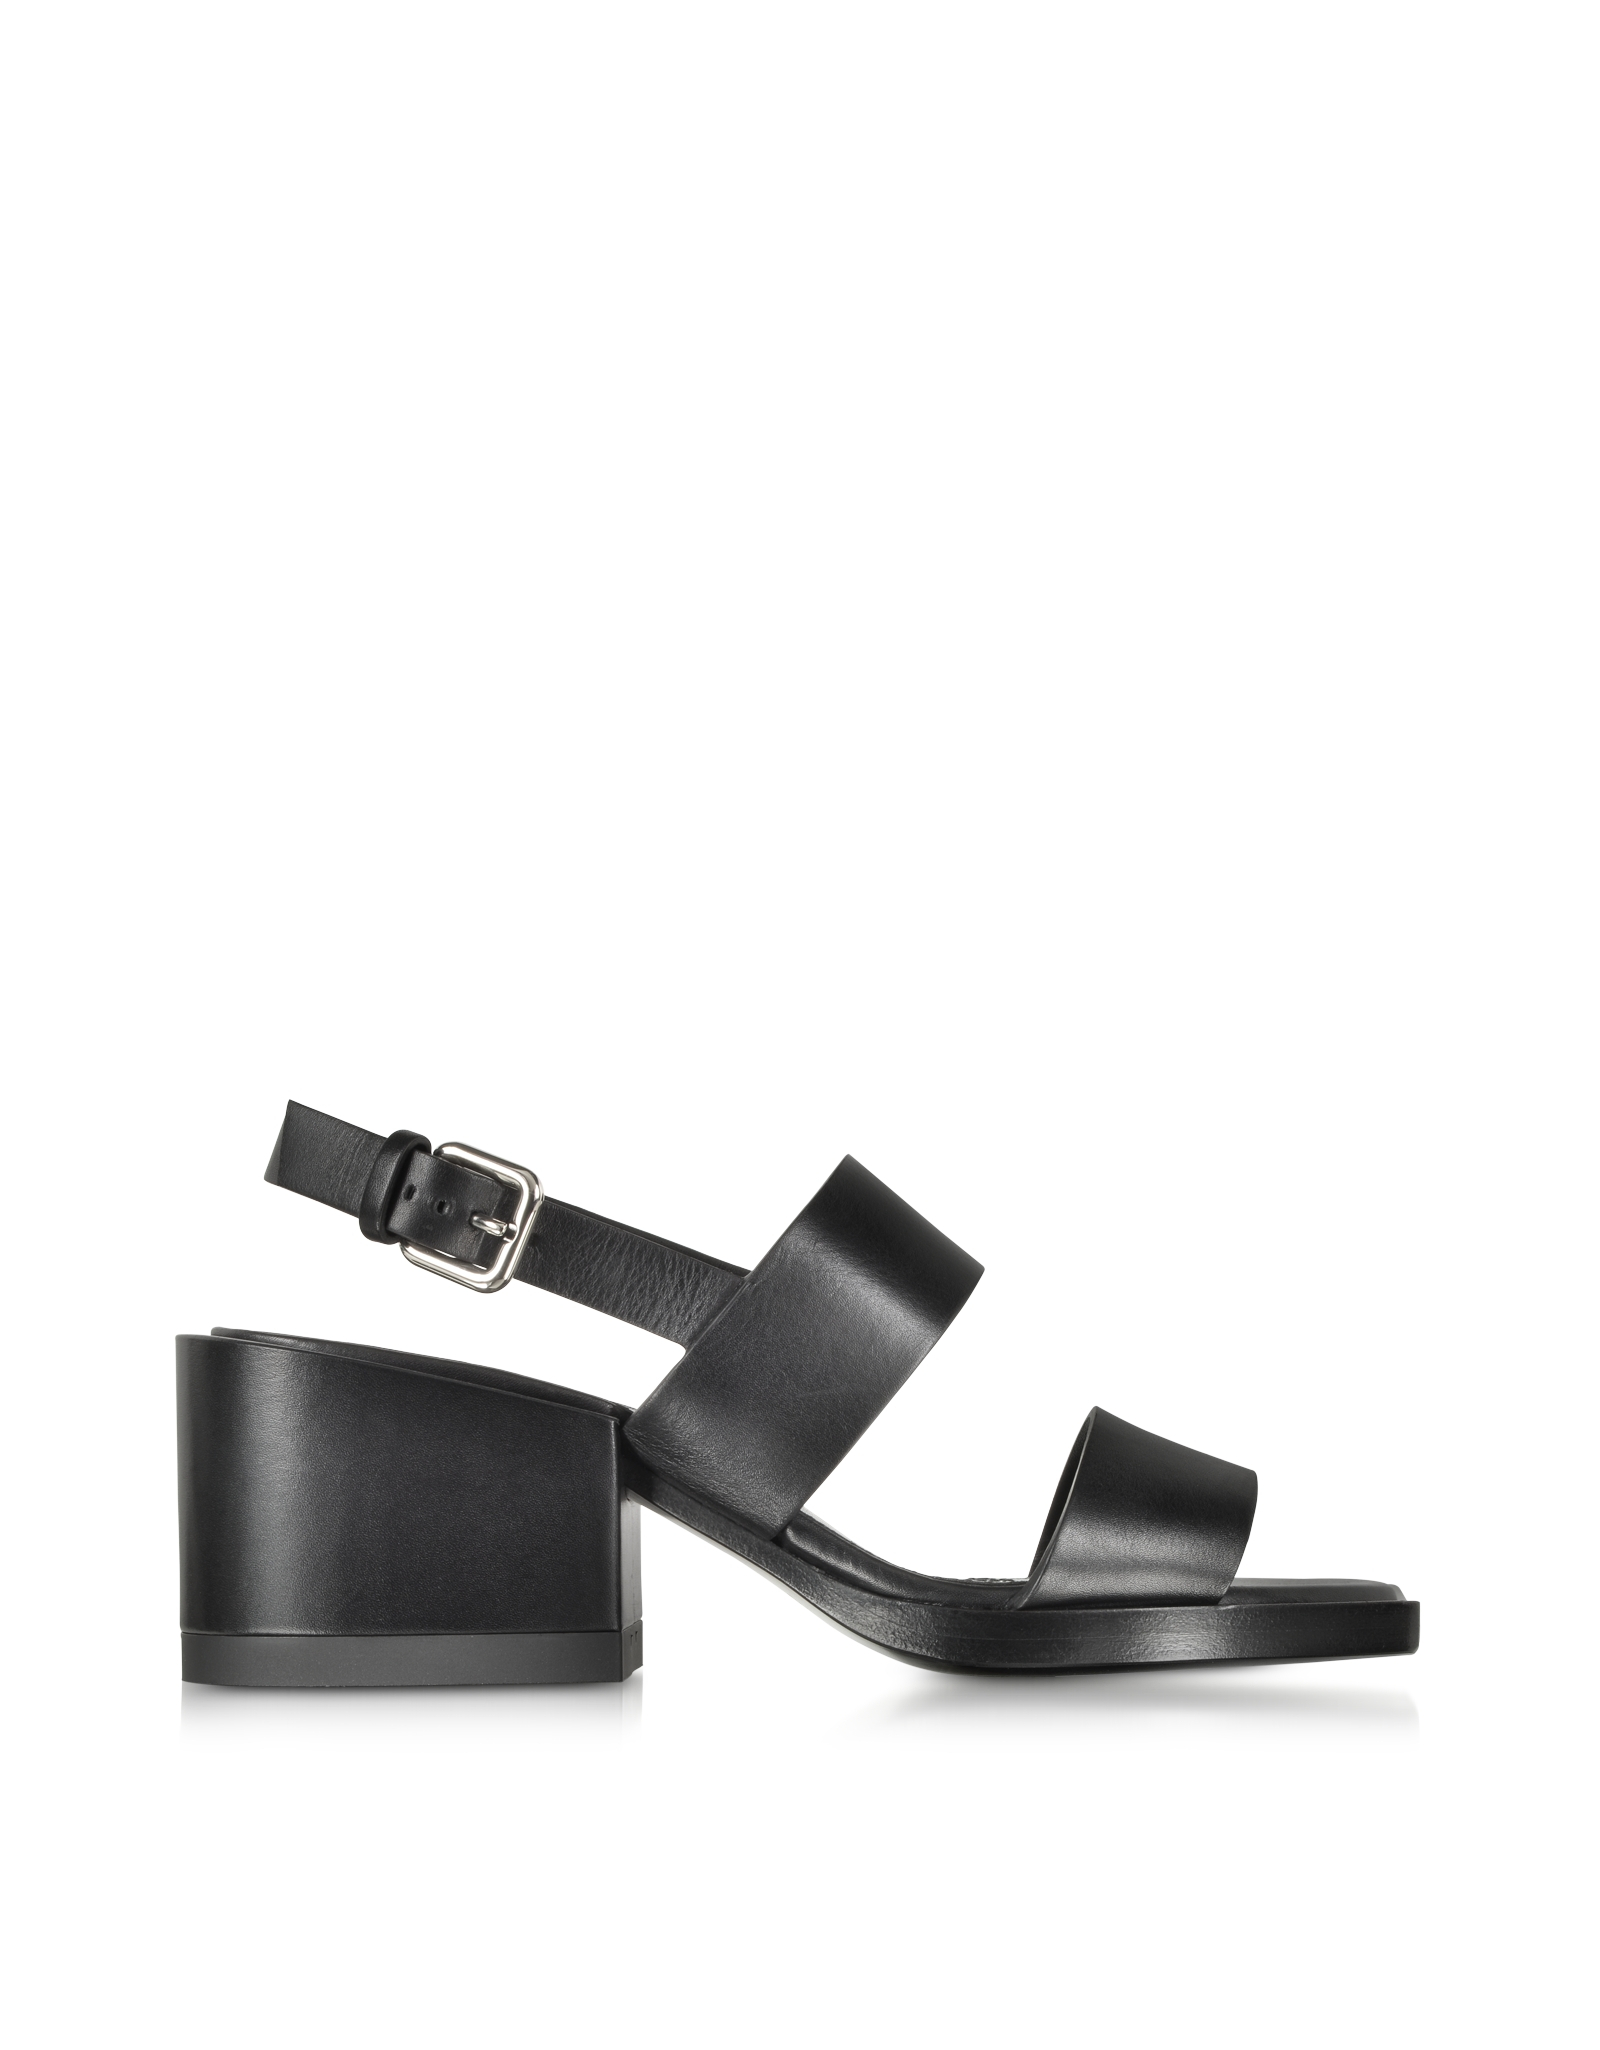 Jil Sander Patent Leather Sandals djY9yZo